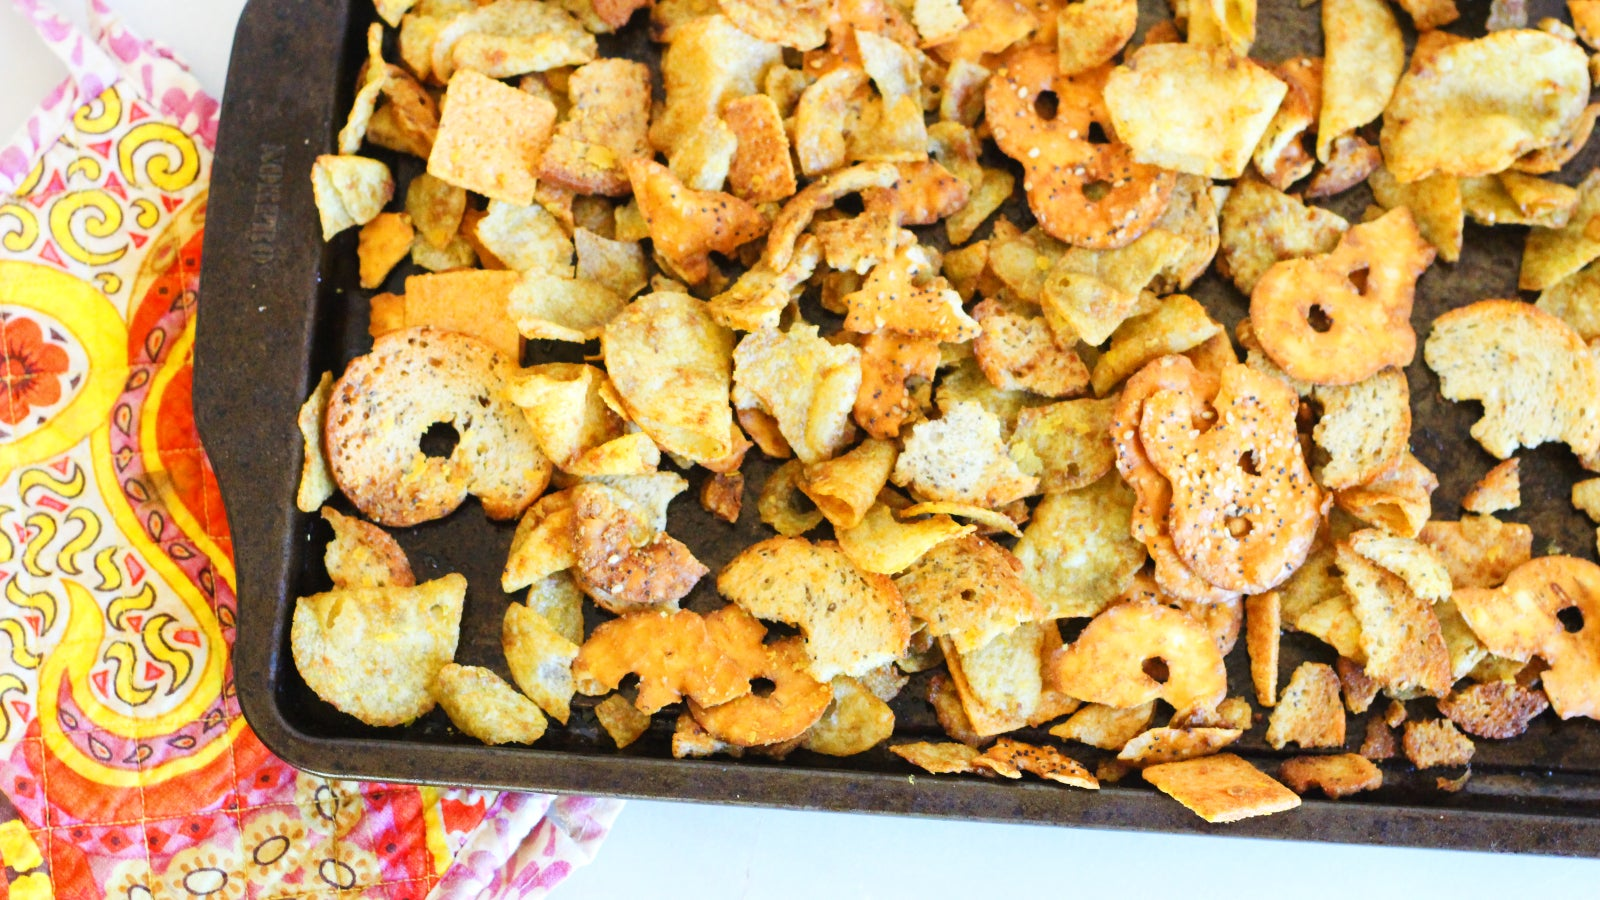 Make This Snack Mix From Leftover Snacks